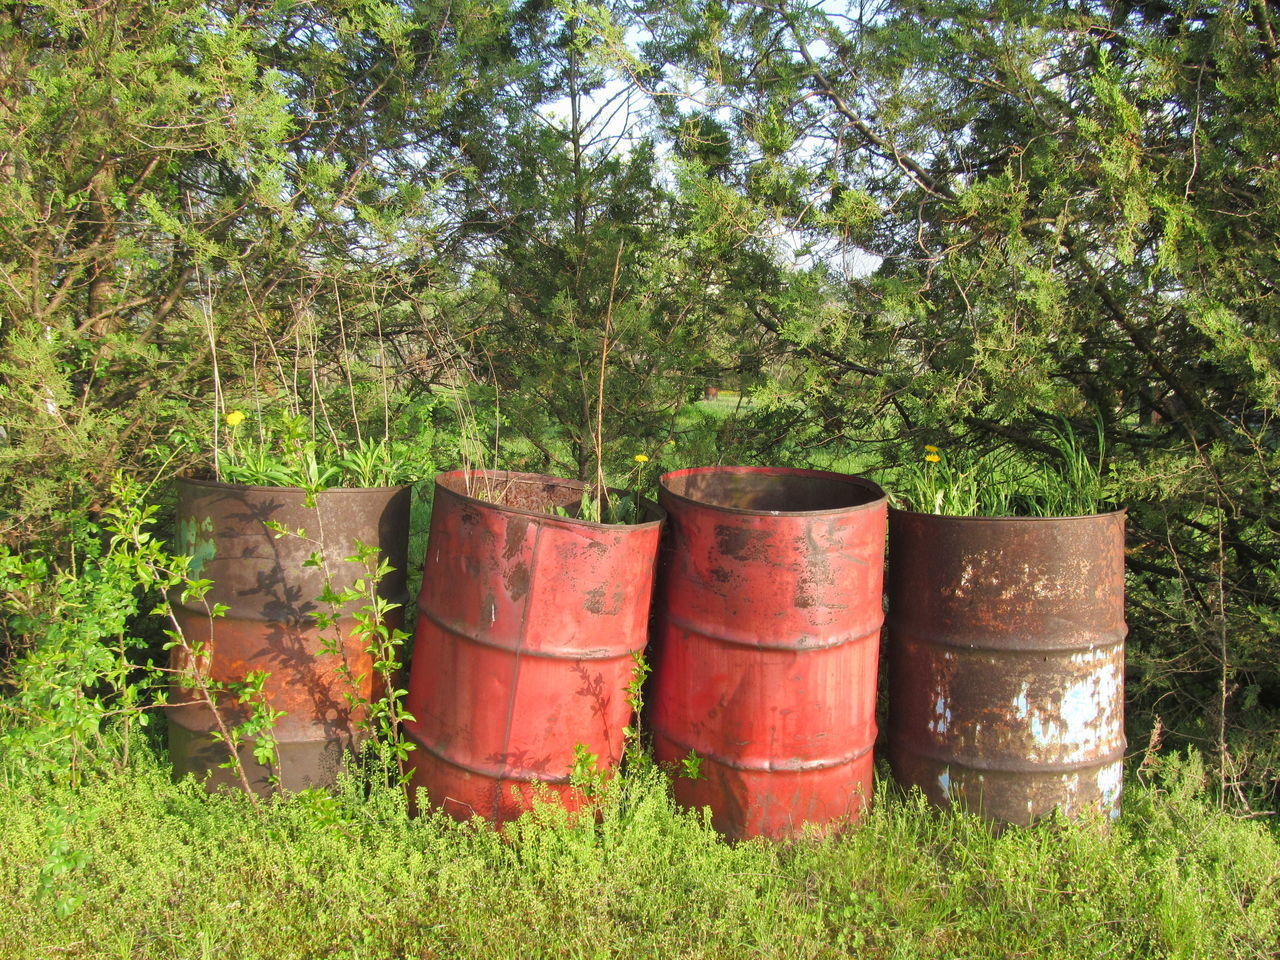 Four Metal Barrels Barrel Cask Four Green Color Keg Metal Barrel Nature Outdoors Red Red Color